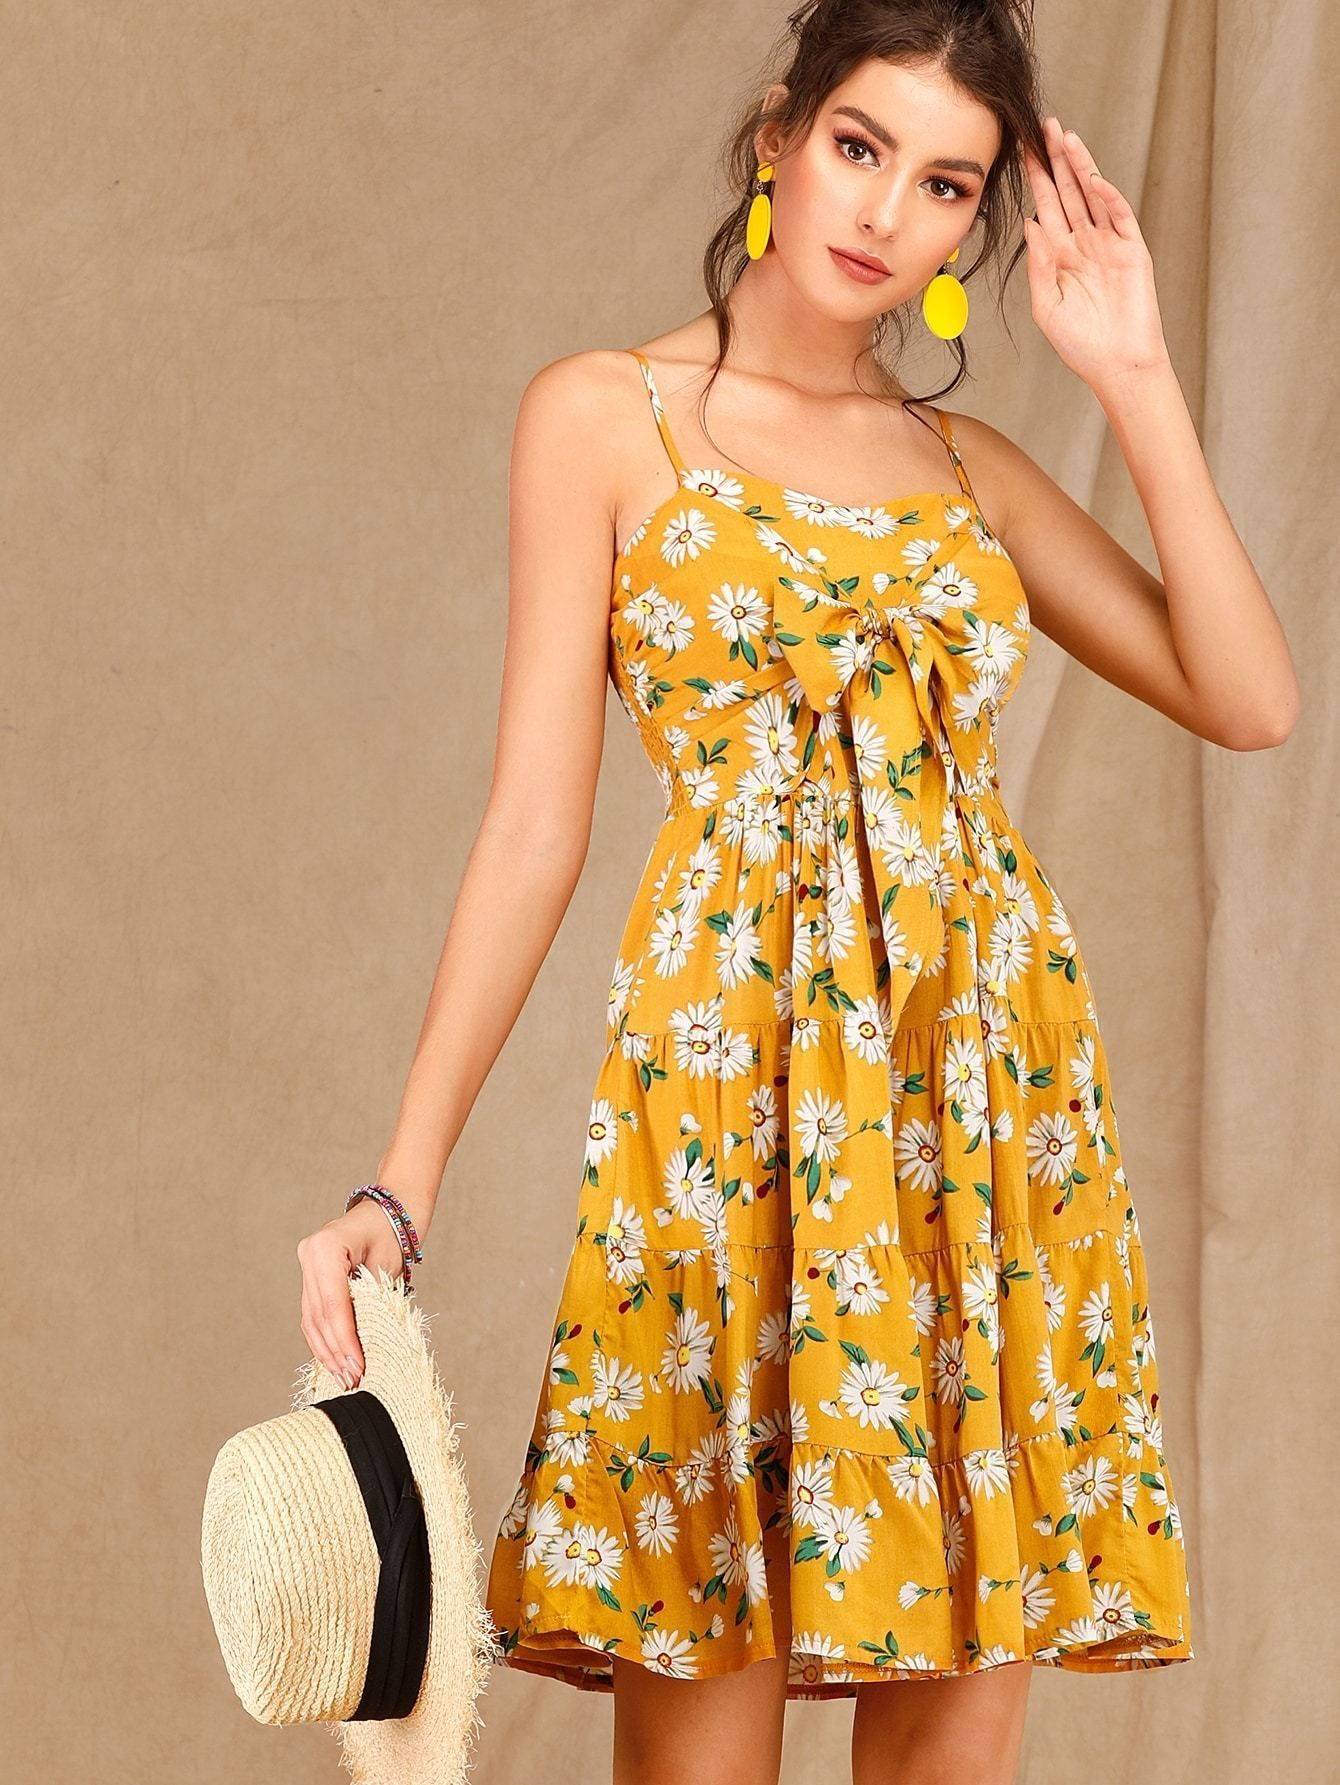 Daisy Floral Tie Front Shirred Slip Sundress Yellow Sundress Yellow Dress Summer Sundress Outfit [ 1785 x 1340 Pixel ]